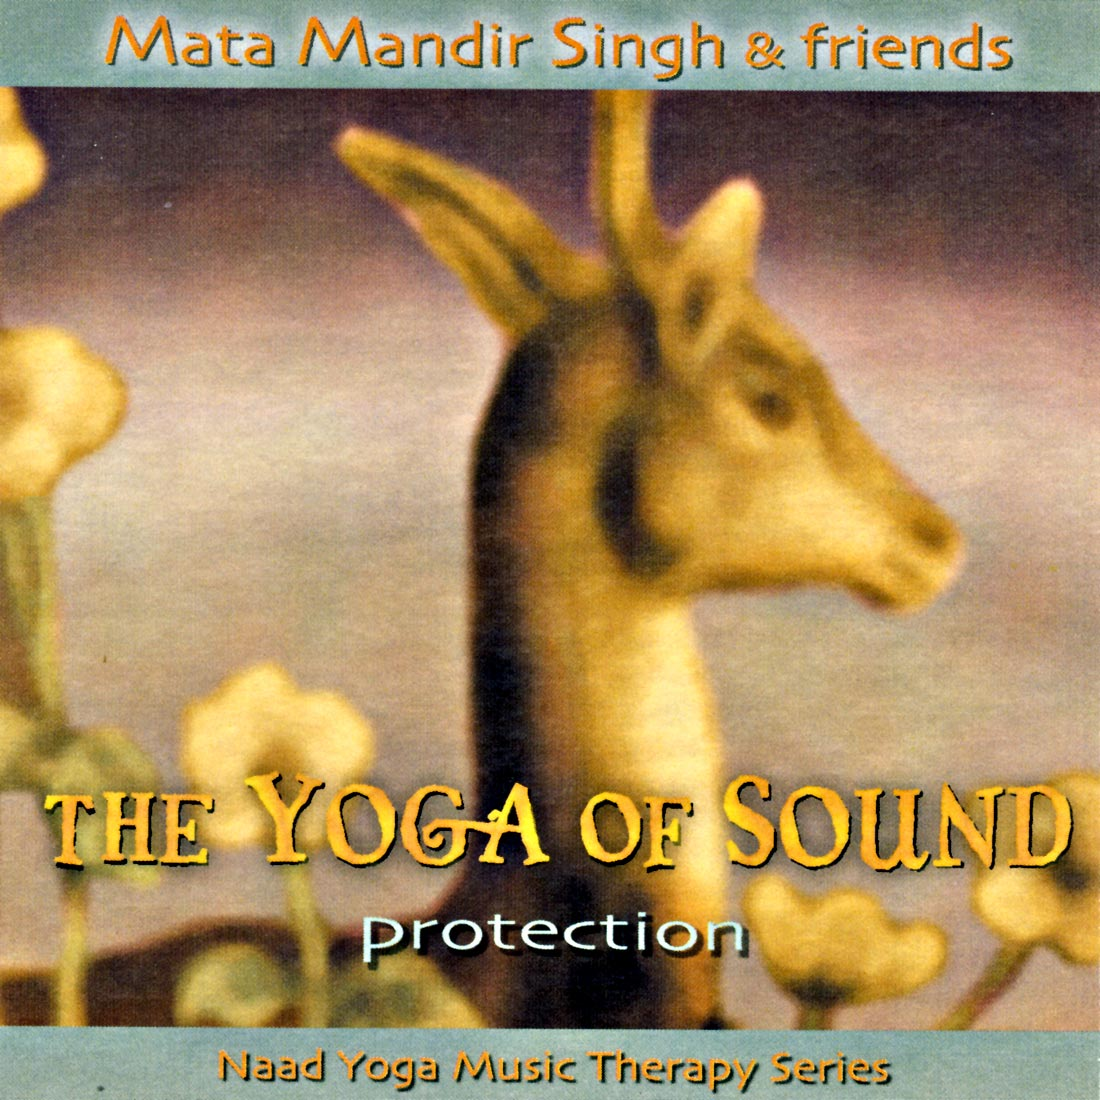 Protection - Mata Mandir Singh & Friends CD